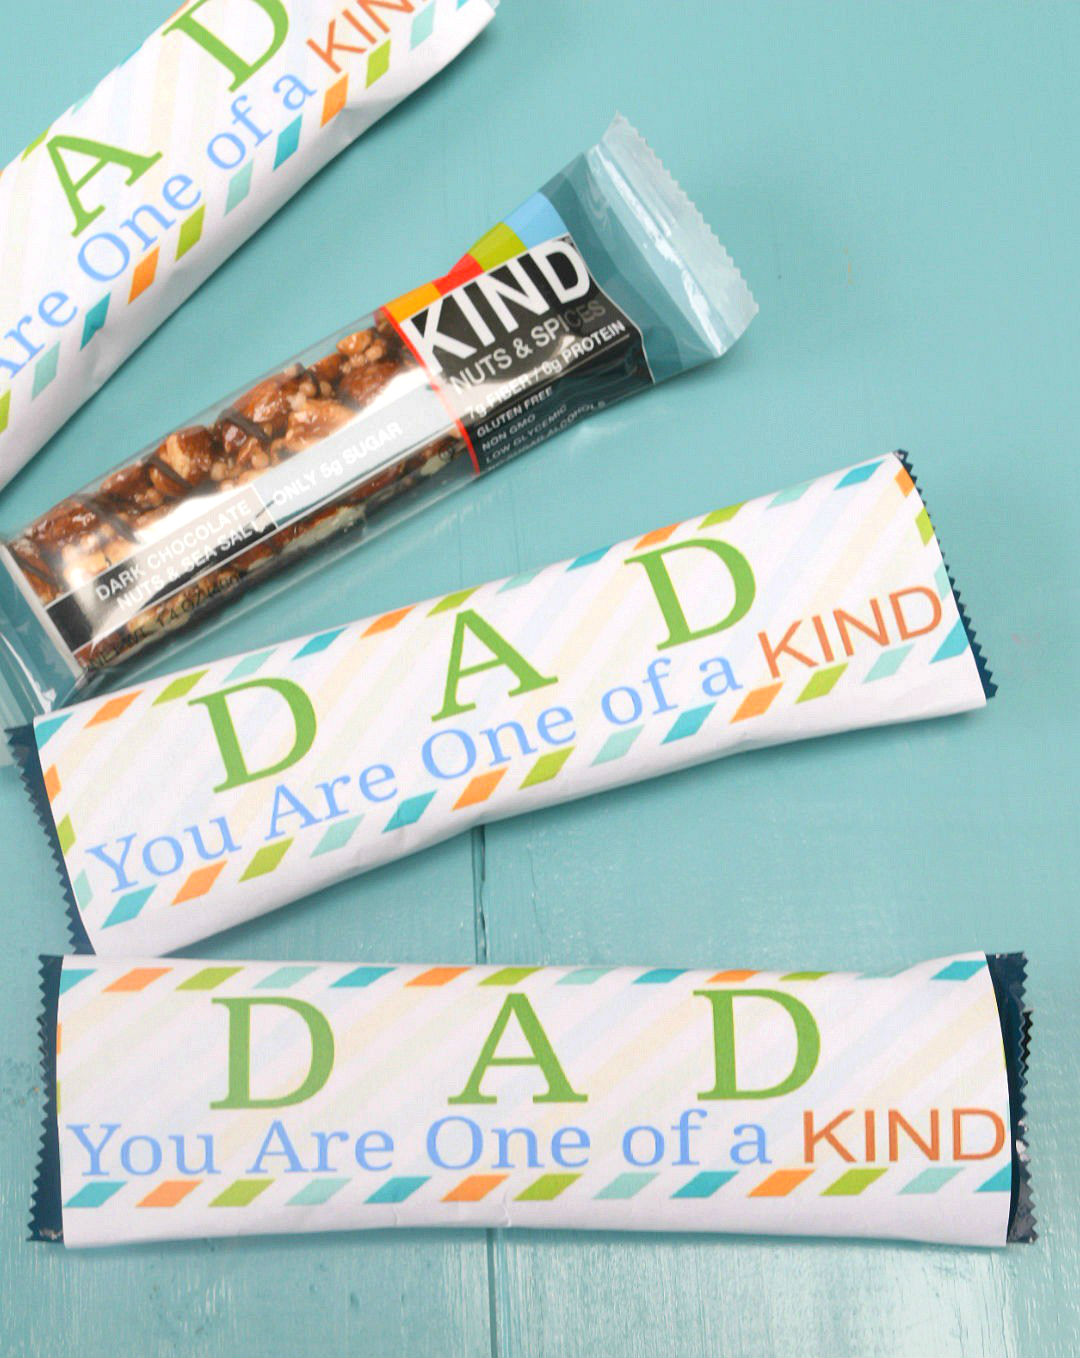 dad-you-are-one-of-a-kind-wrapper-the-perfect-gift